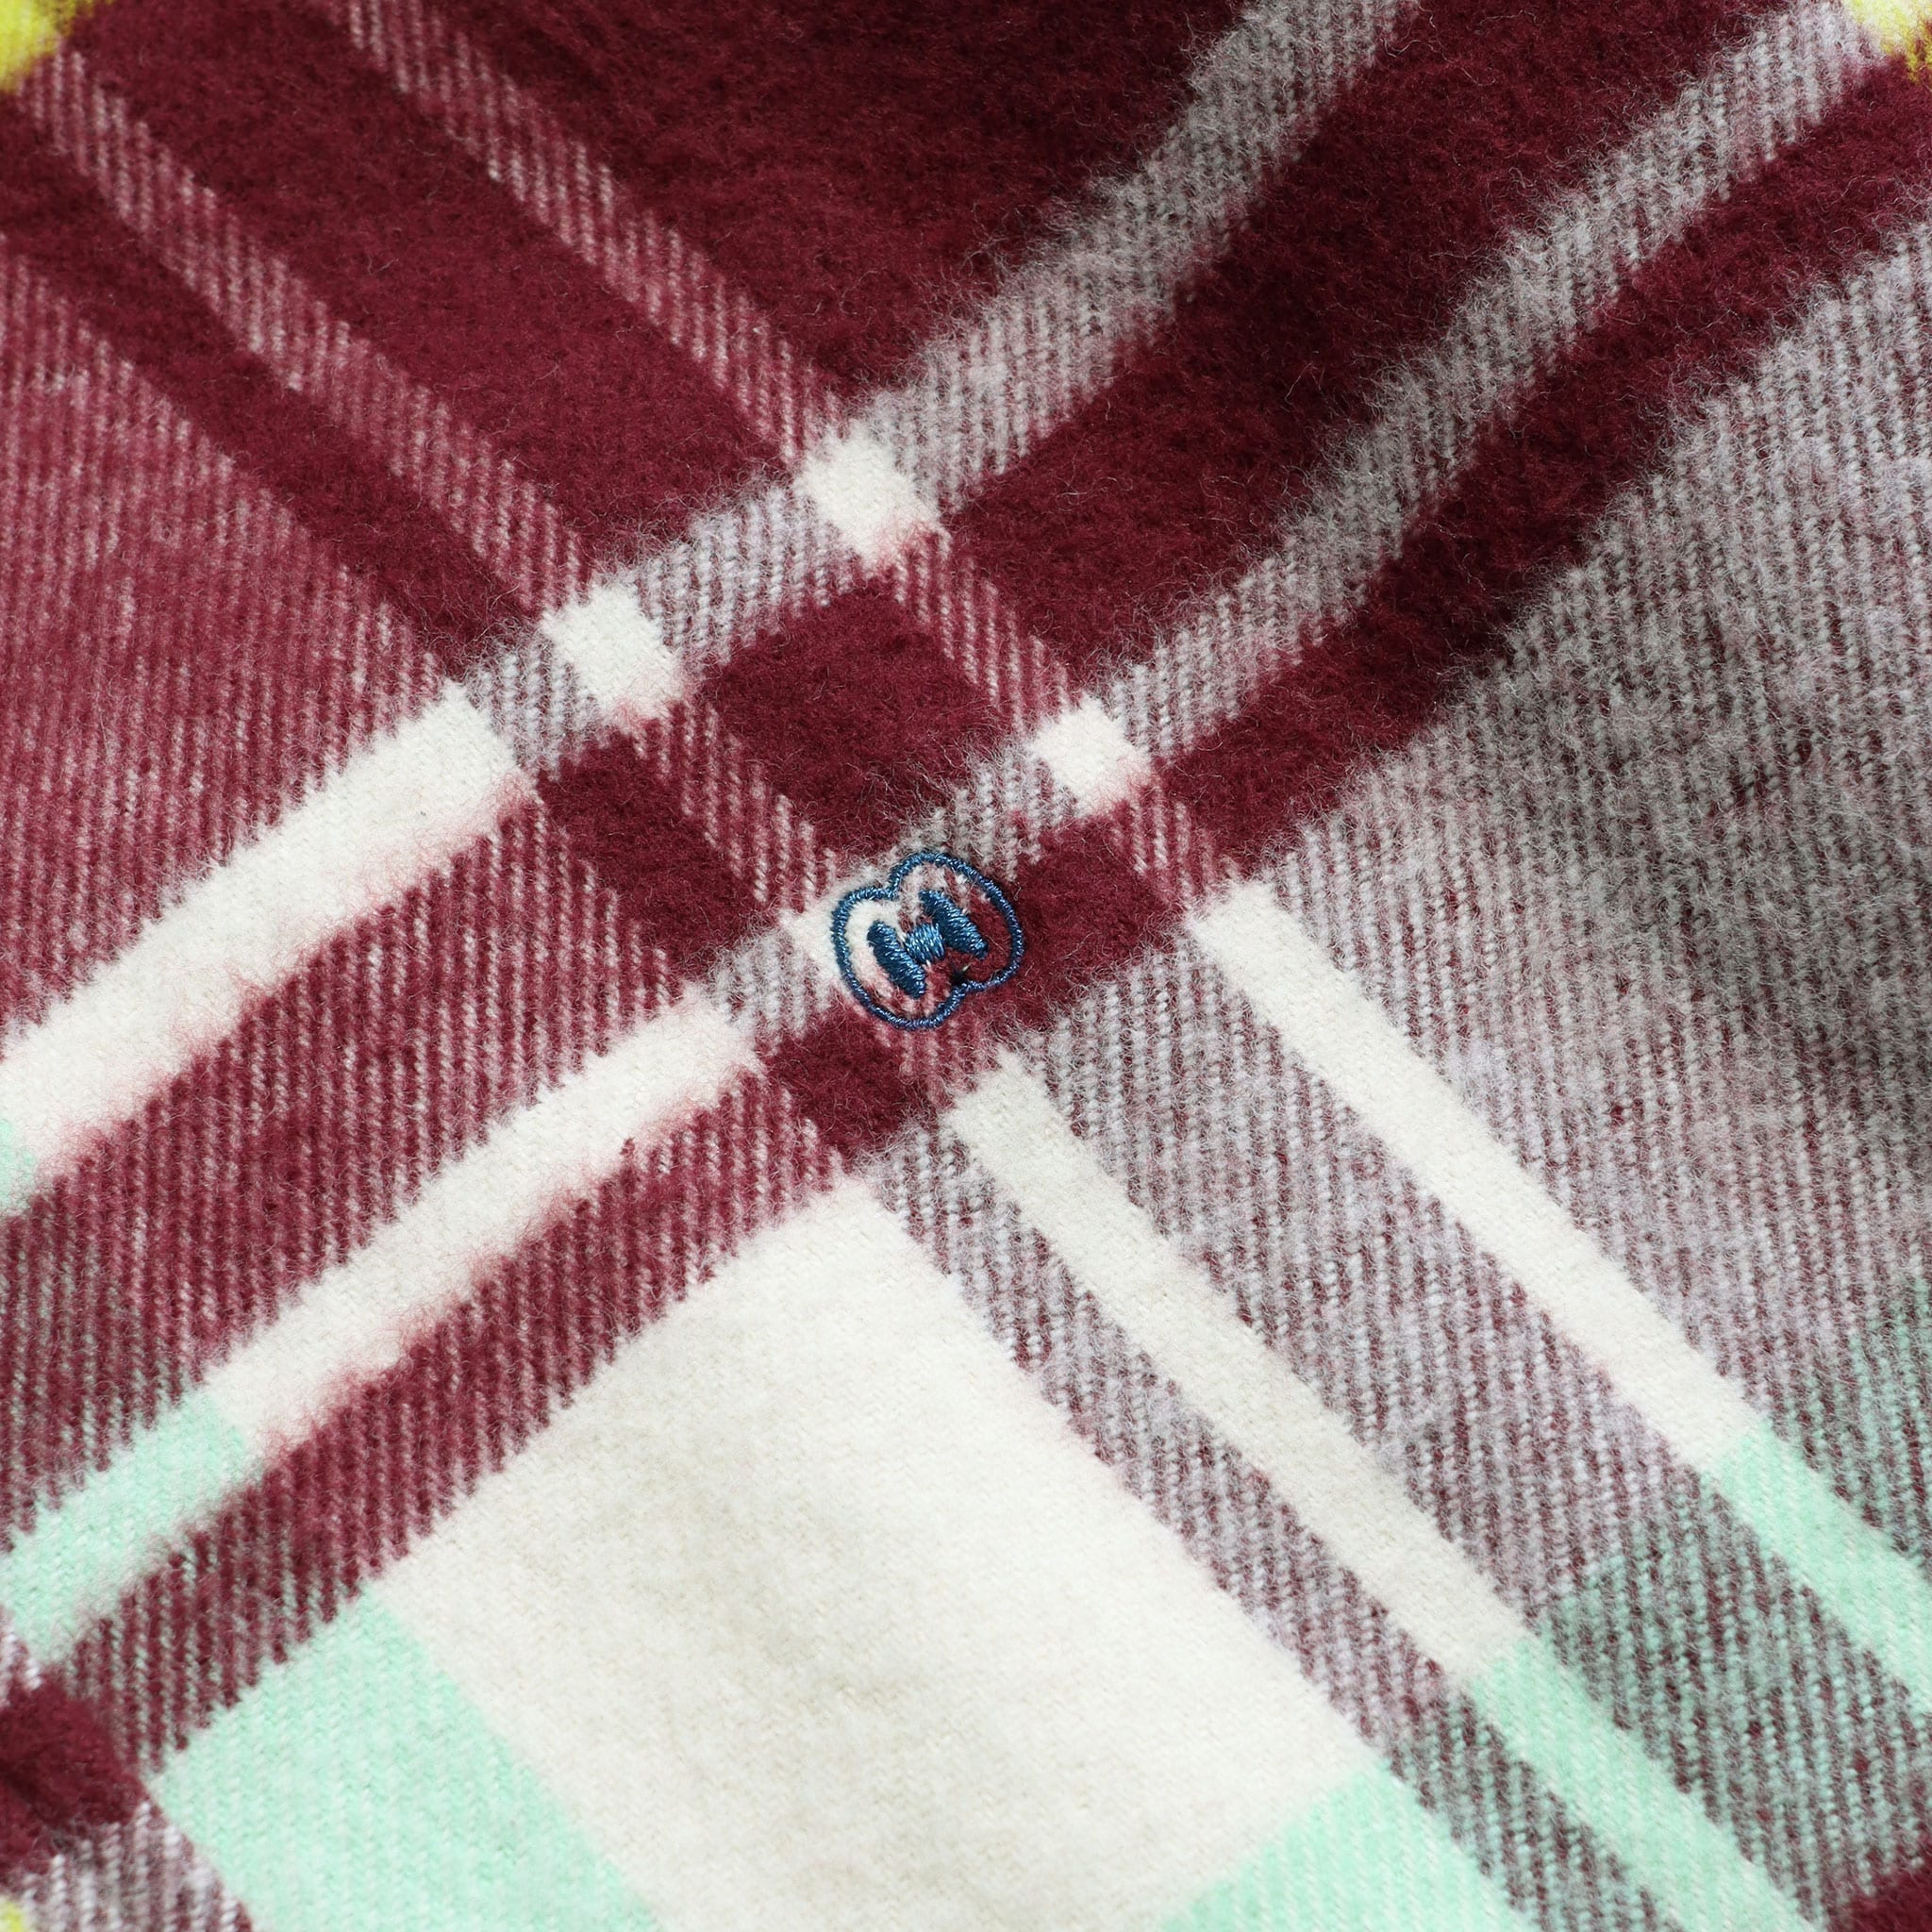 MSCo x Casual Co – Mod Button Down Long Sleeve Shirt a Burgundy Check Up-Cycled Cotton Flannel Fabric 3